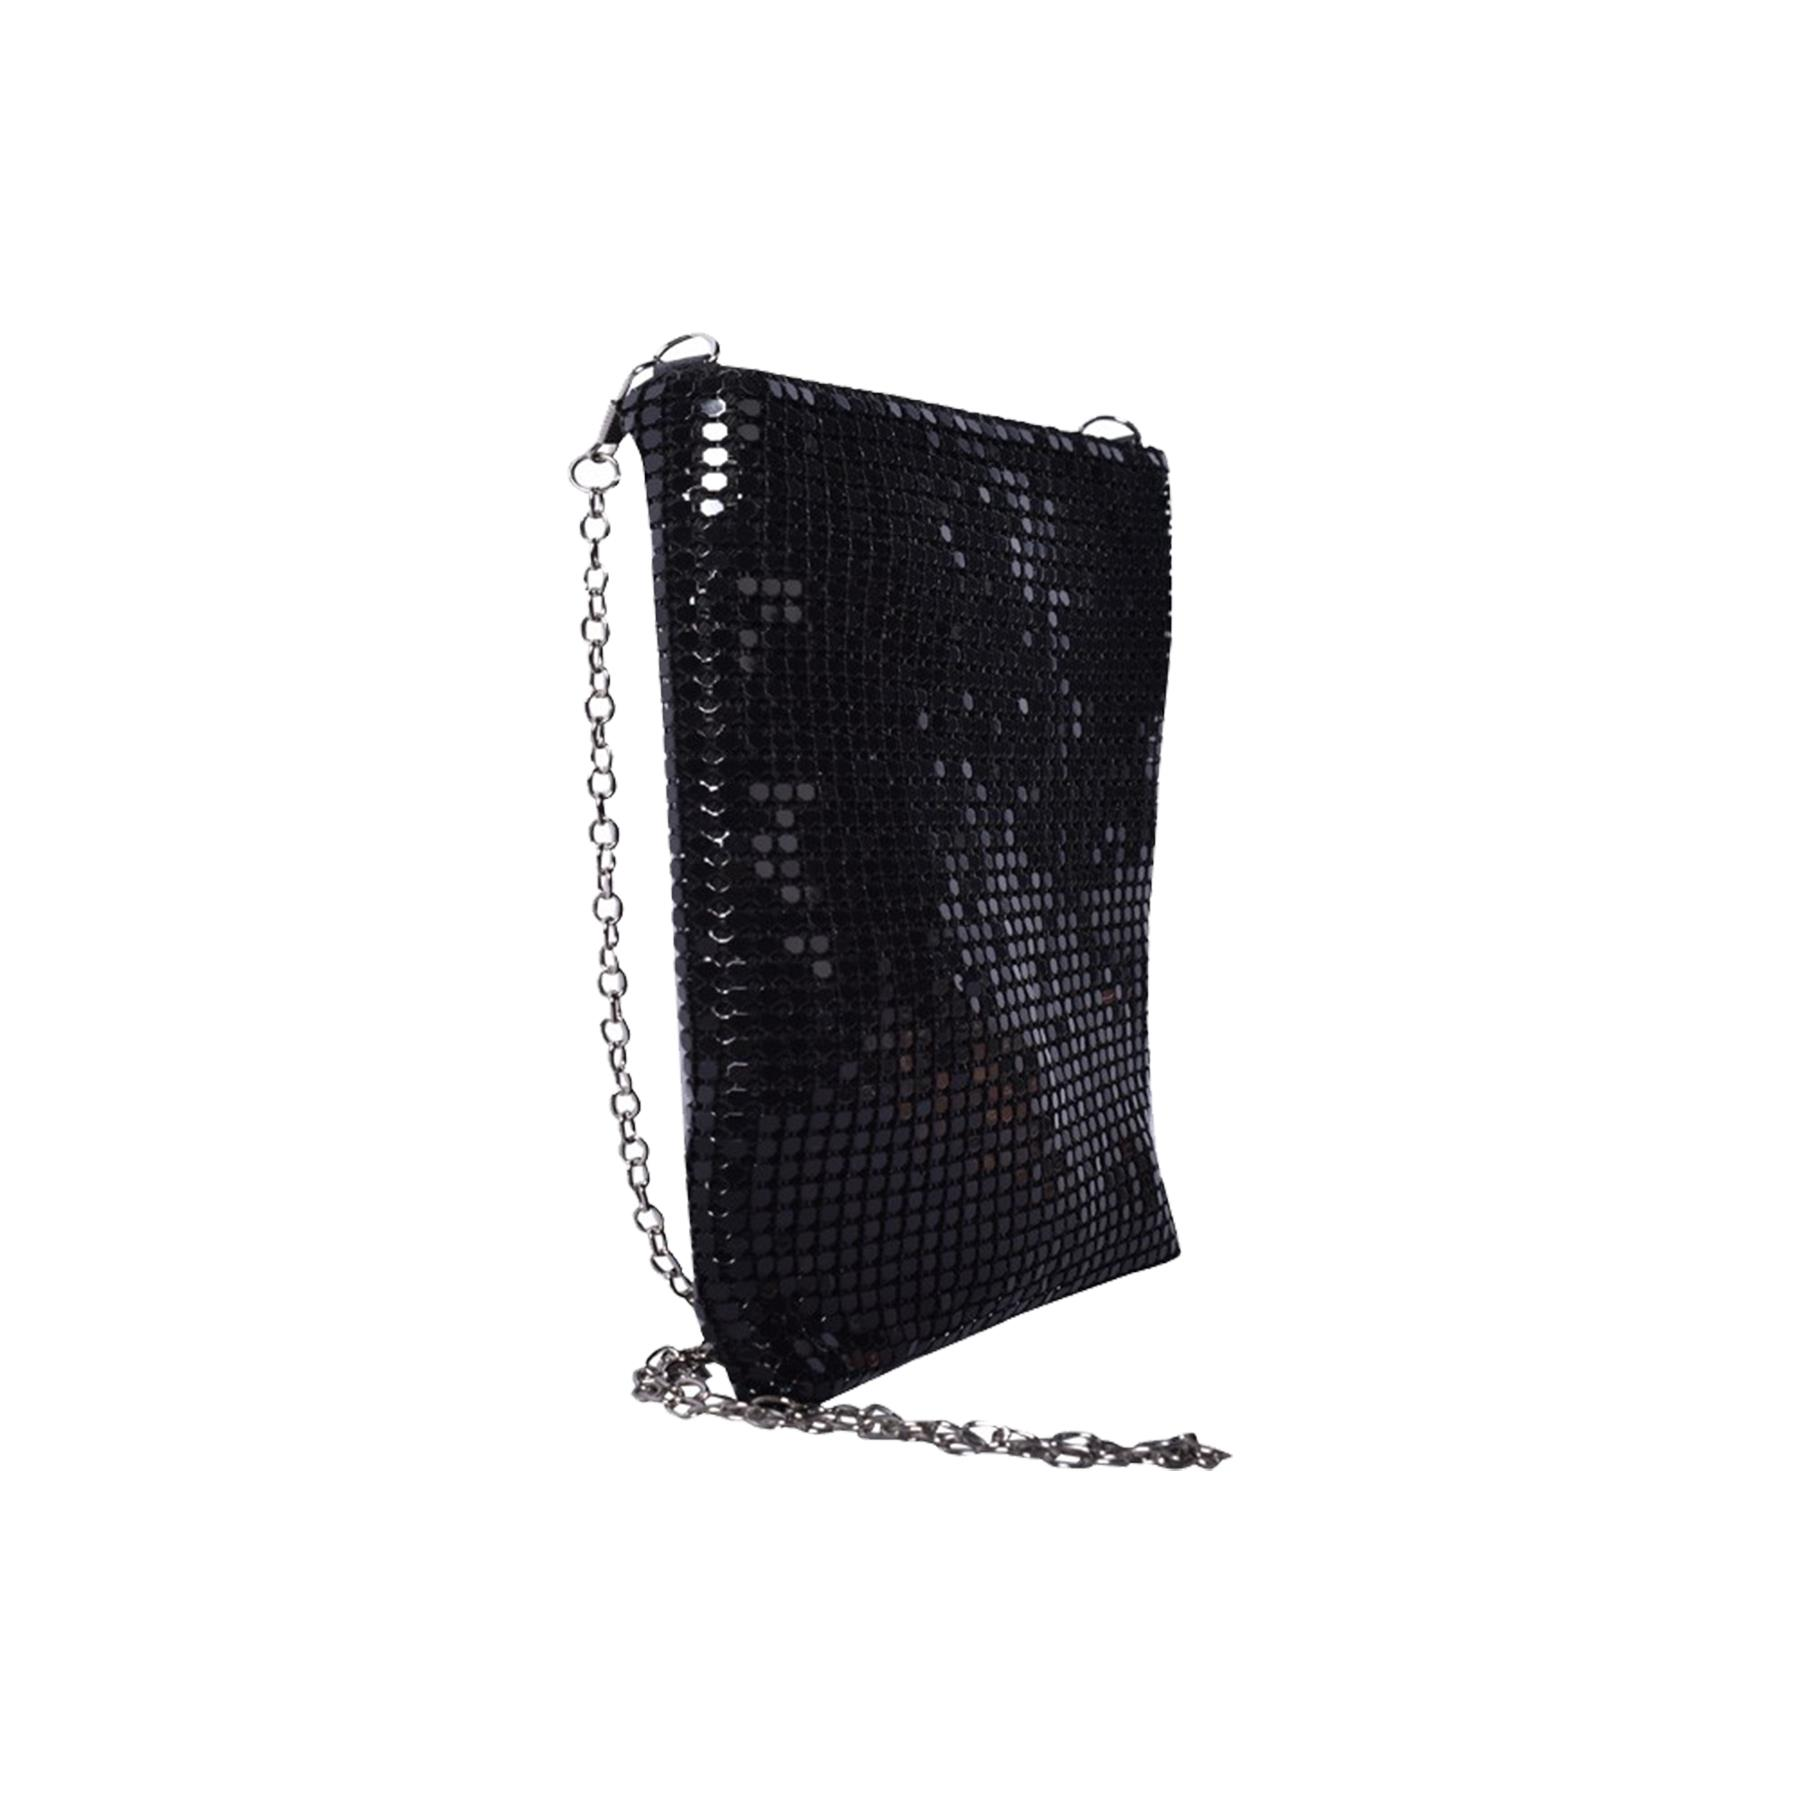 New-Ladies-Chainmail-Faux-Leather-Chain-Strap-Wedding-Clutch-Bag-Pouch thumbnail 12